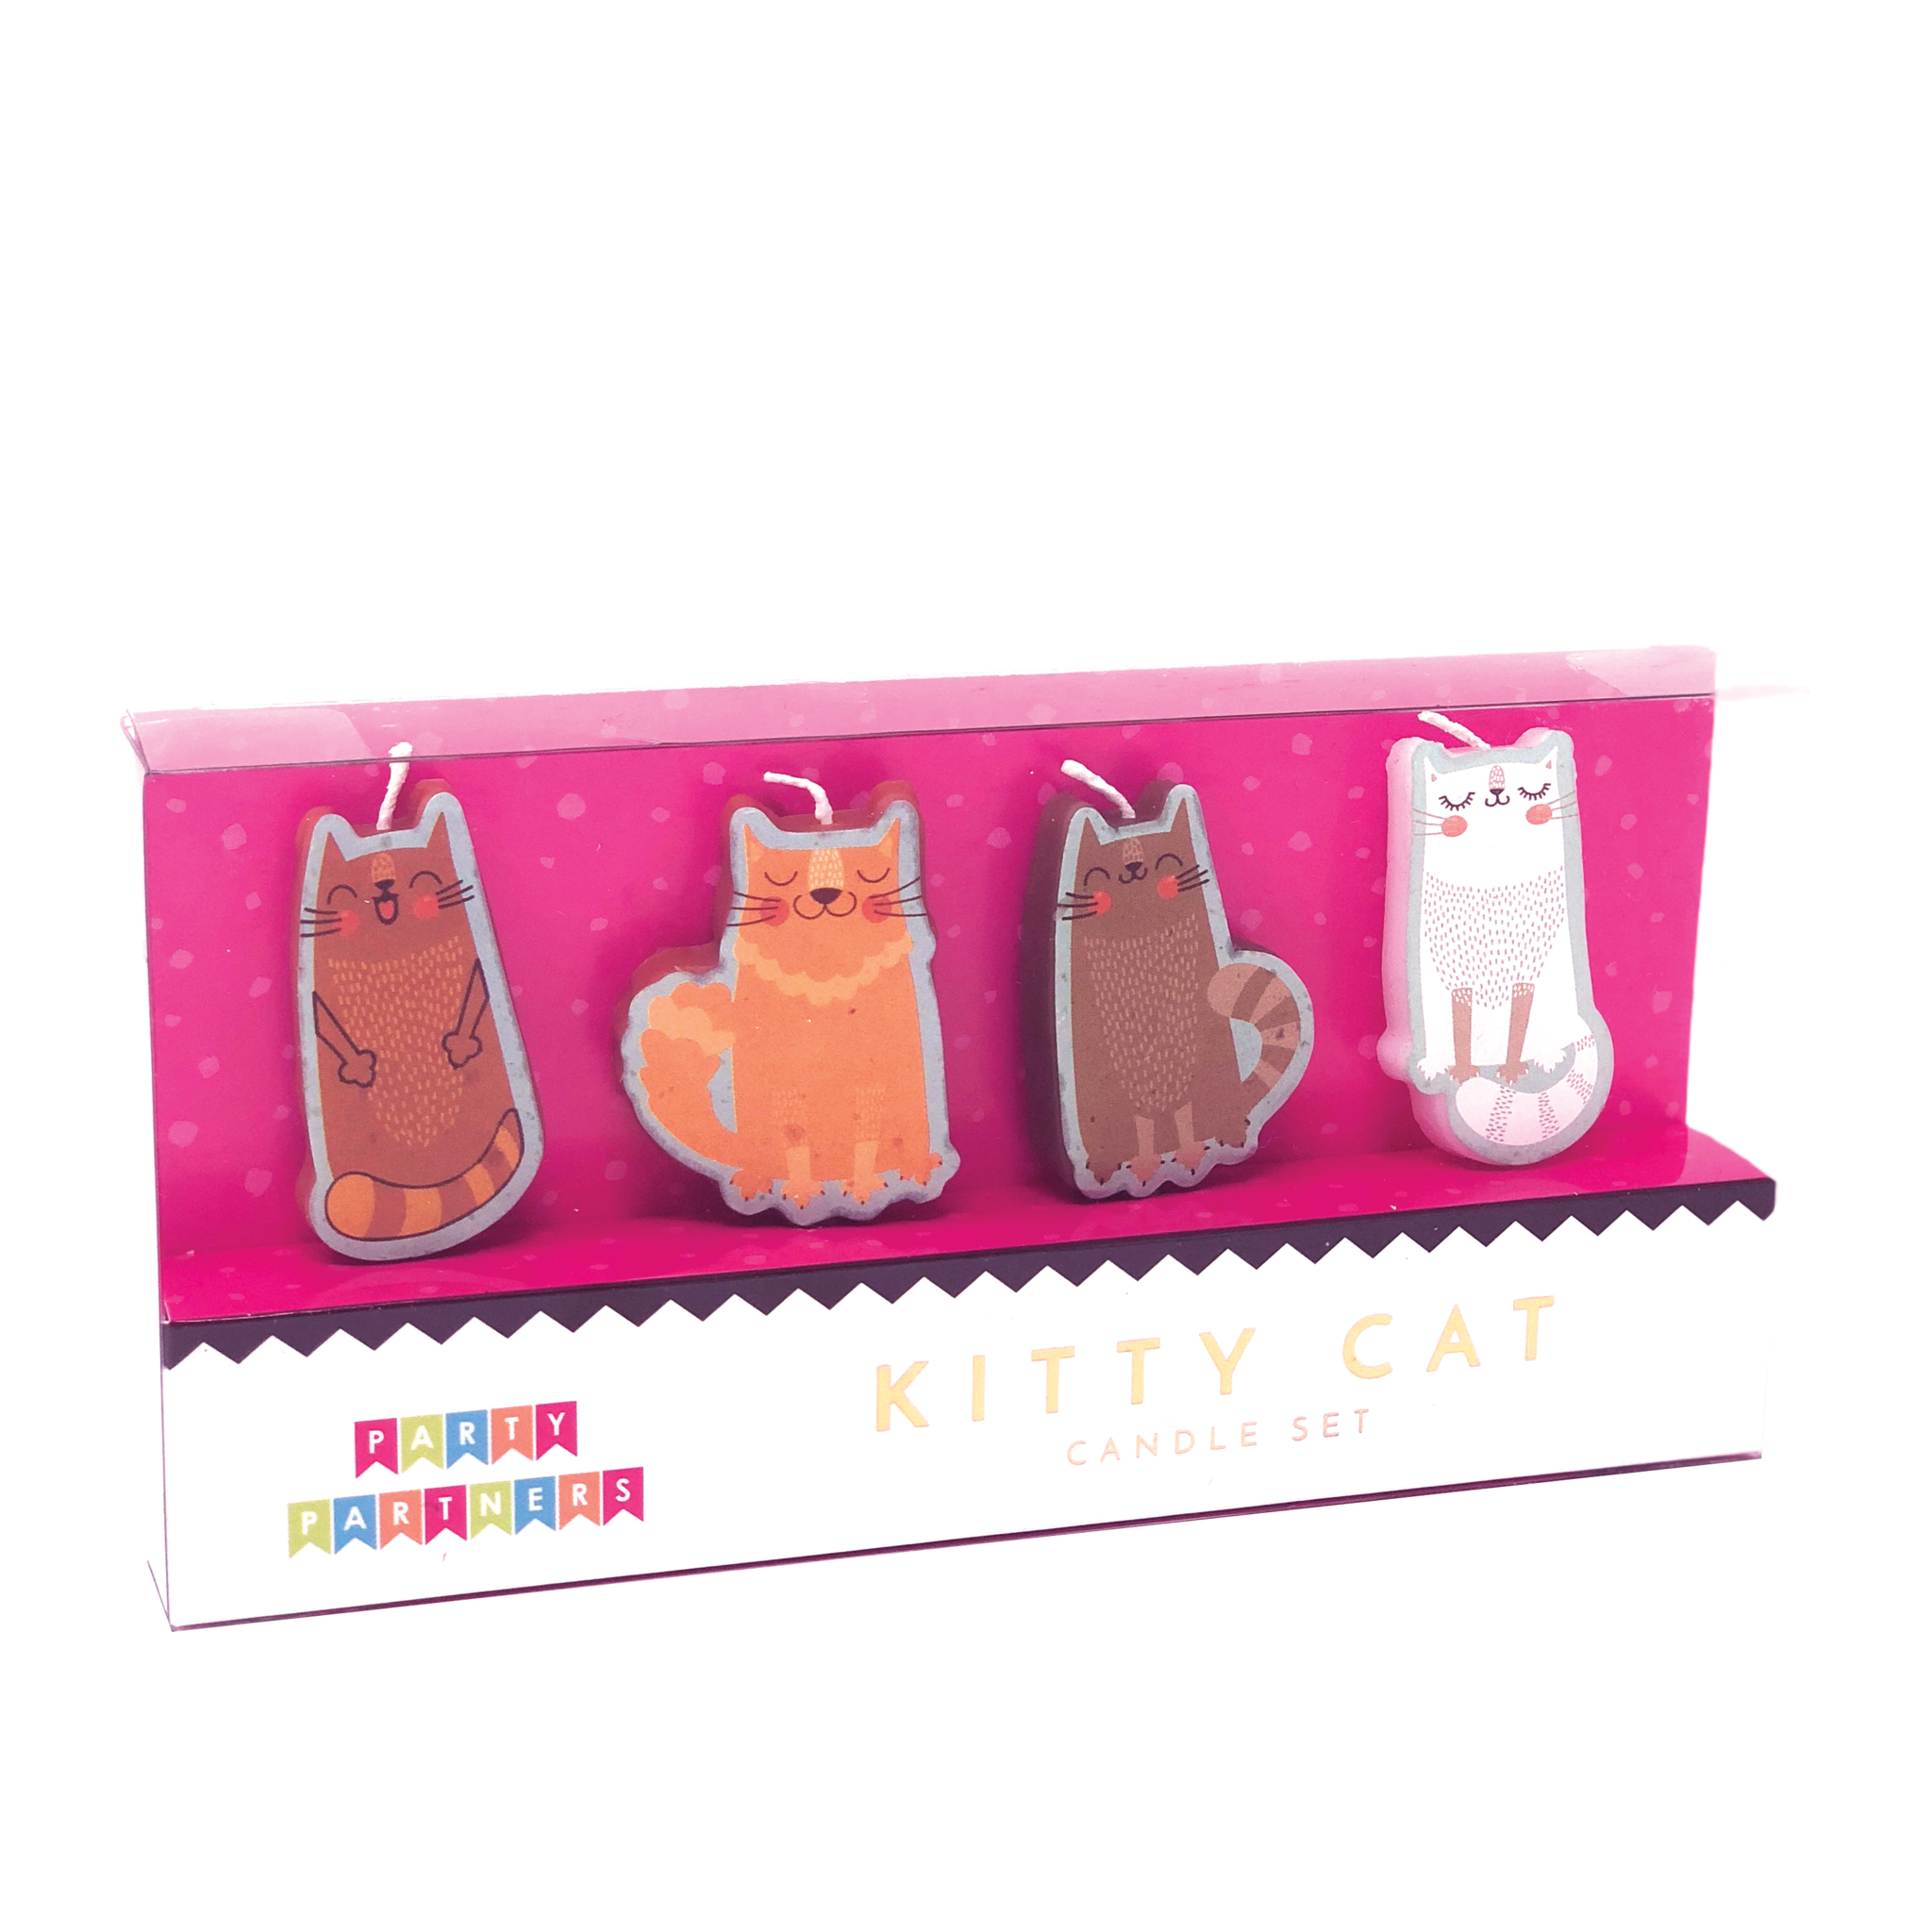 Party Partners Candle Set-Kitty Cat